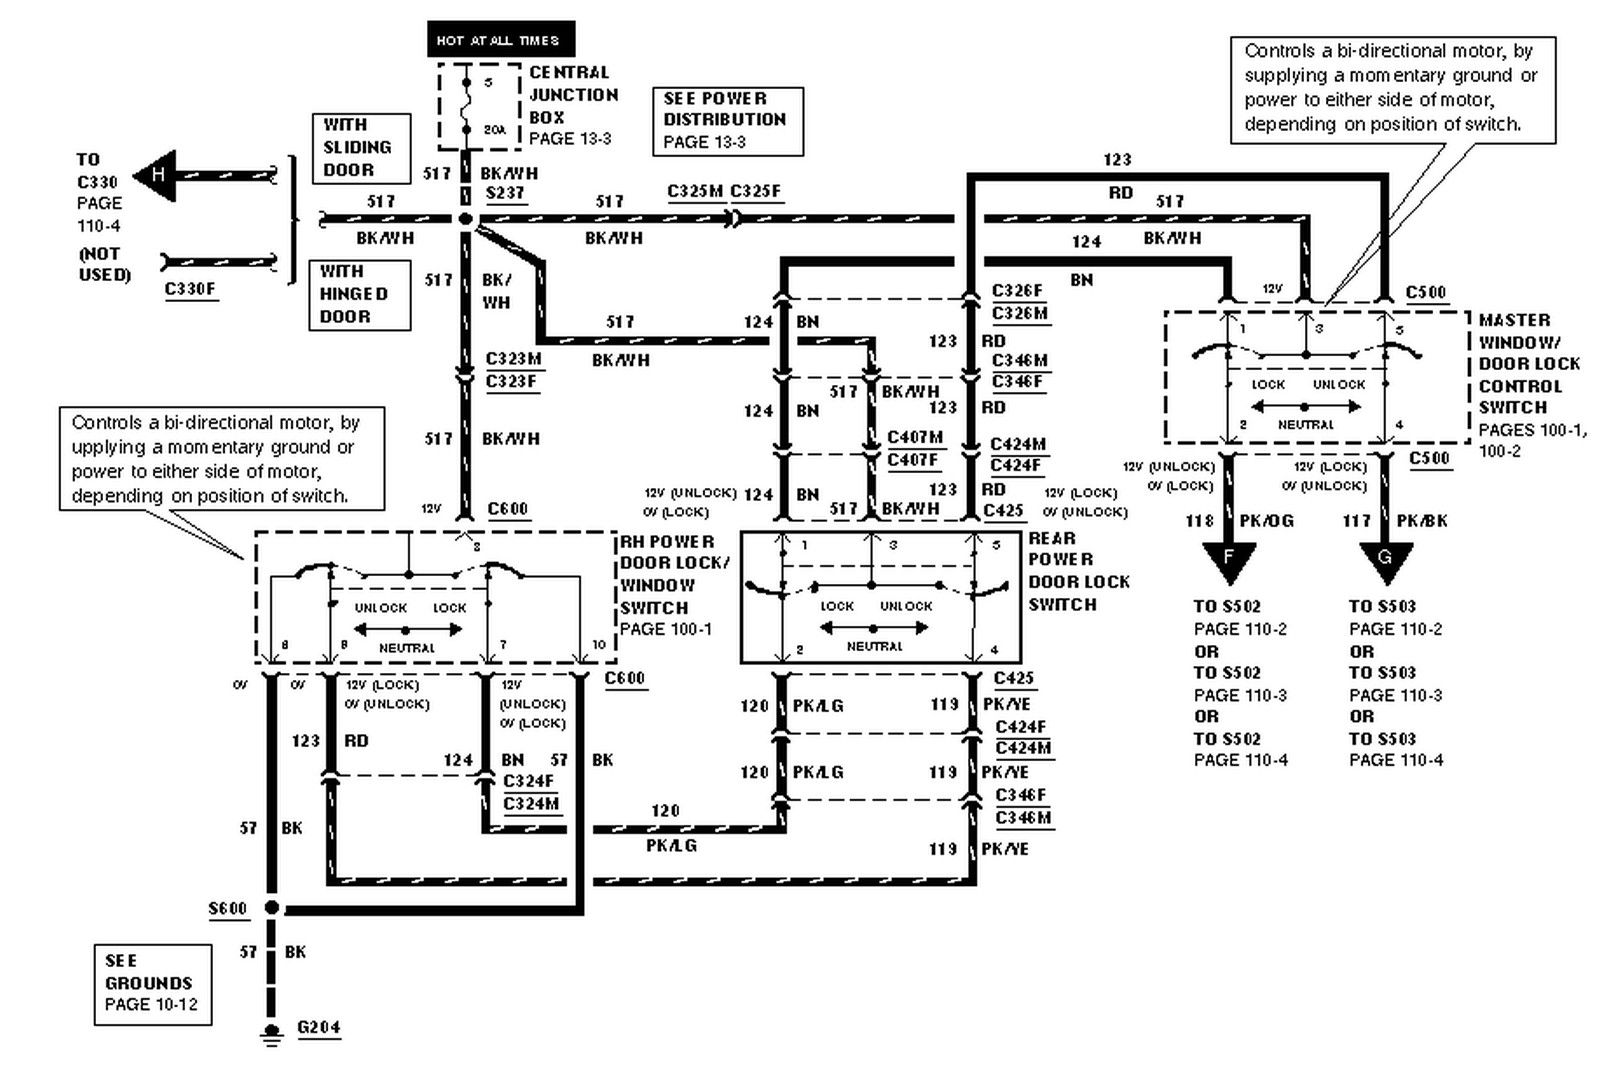 80 2010_11_05_235941_99_e_350_power_door_lock_wiring_diagram_e574233ae37af9677ff5fddb790386a28f9dd7ad ford f150 wiring diagram vehiclepad readingrat net 2005 ford f150 driver door wiring harness at gsmx.co